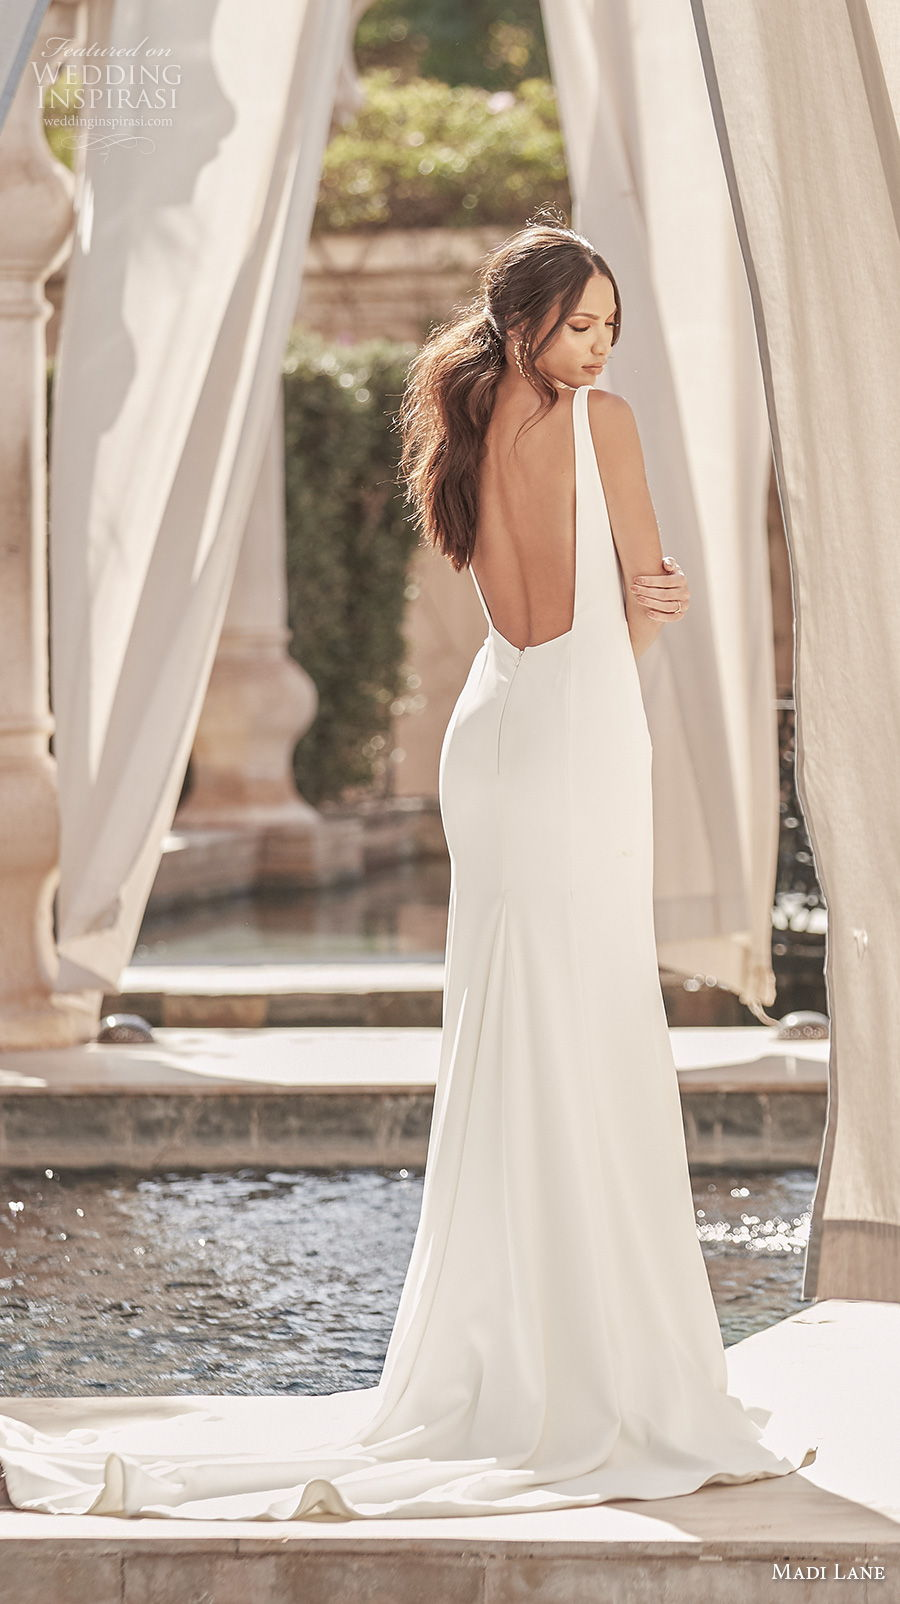 madi lane fall 2020 bridal sleeveless with strap square neck simple minimalist elegant fit and flare wedding dress backless low square back chapel train (16) bv